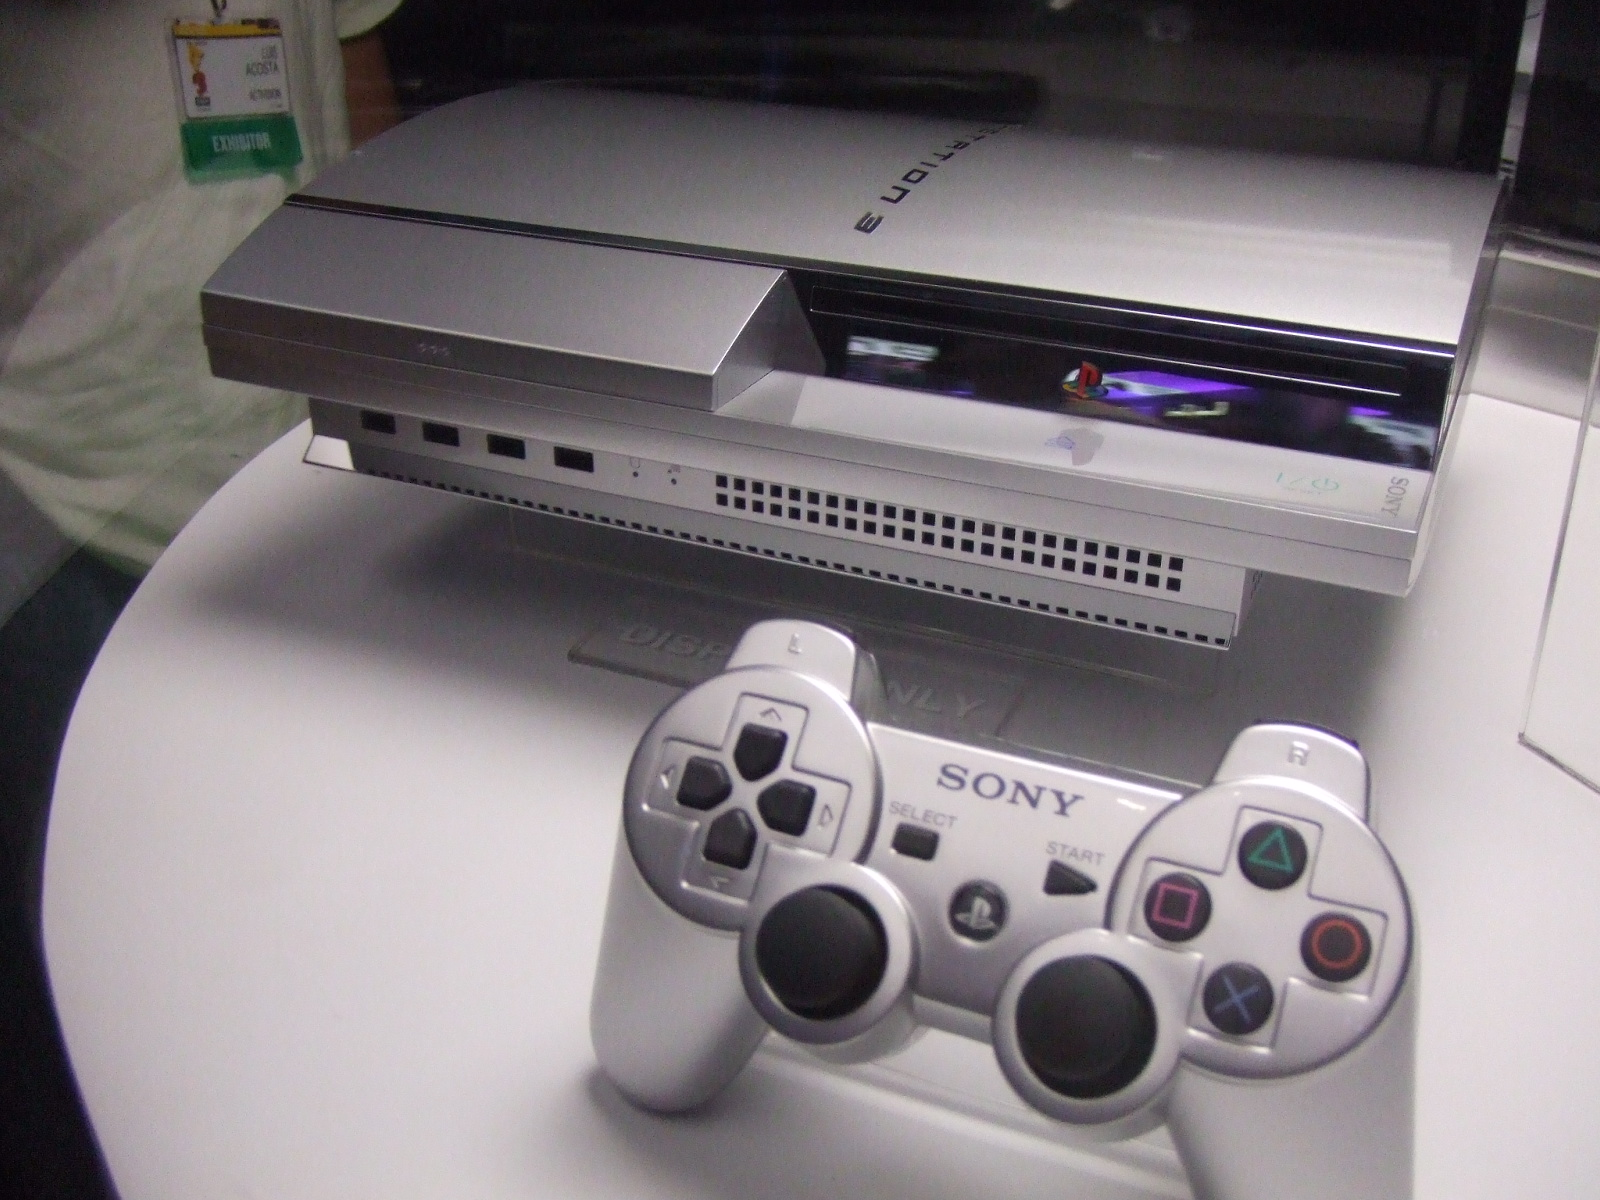 File:PS3 and controller at E3 2006 jpg - Wikimedia Commons